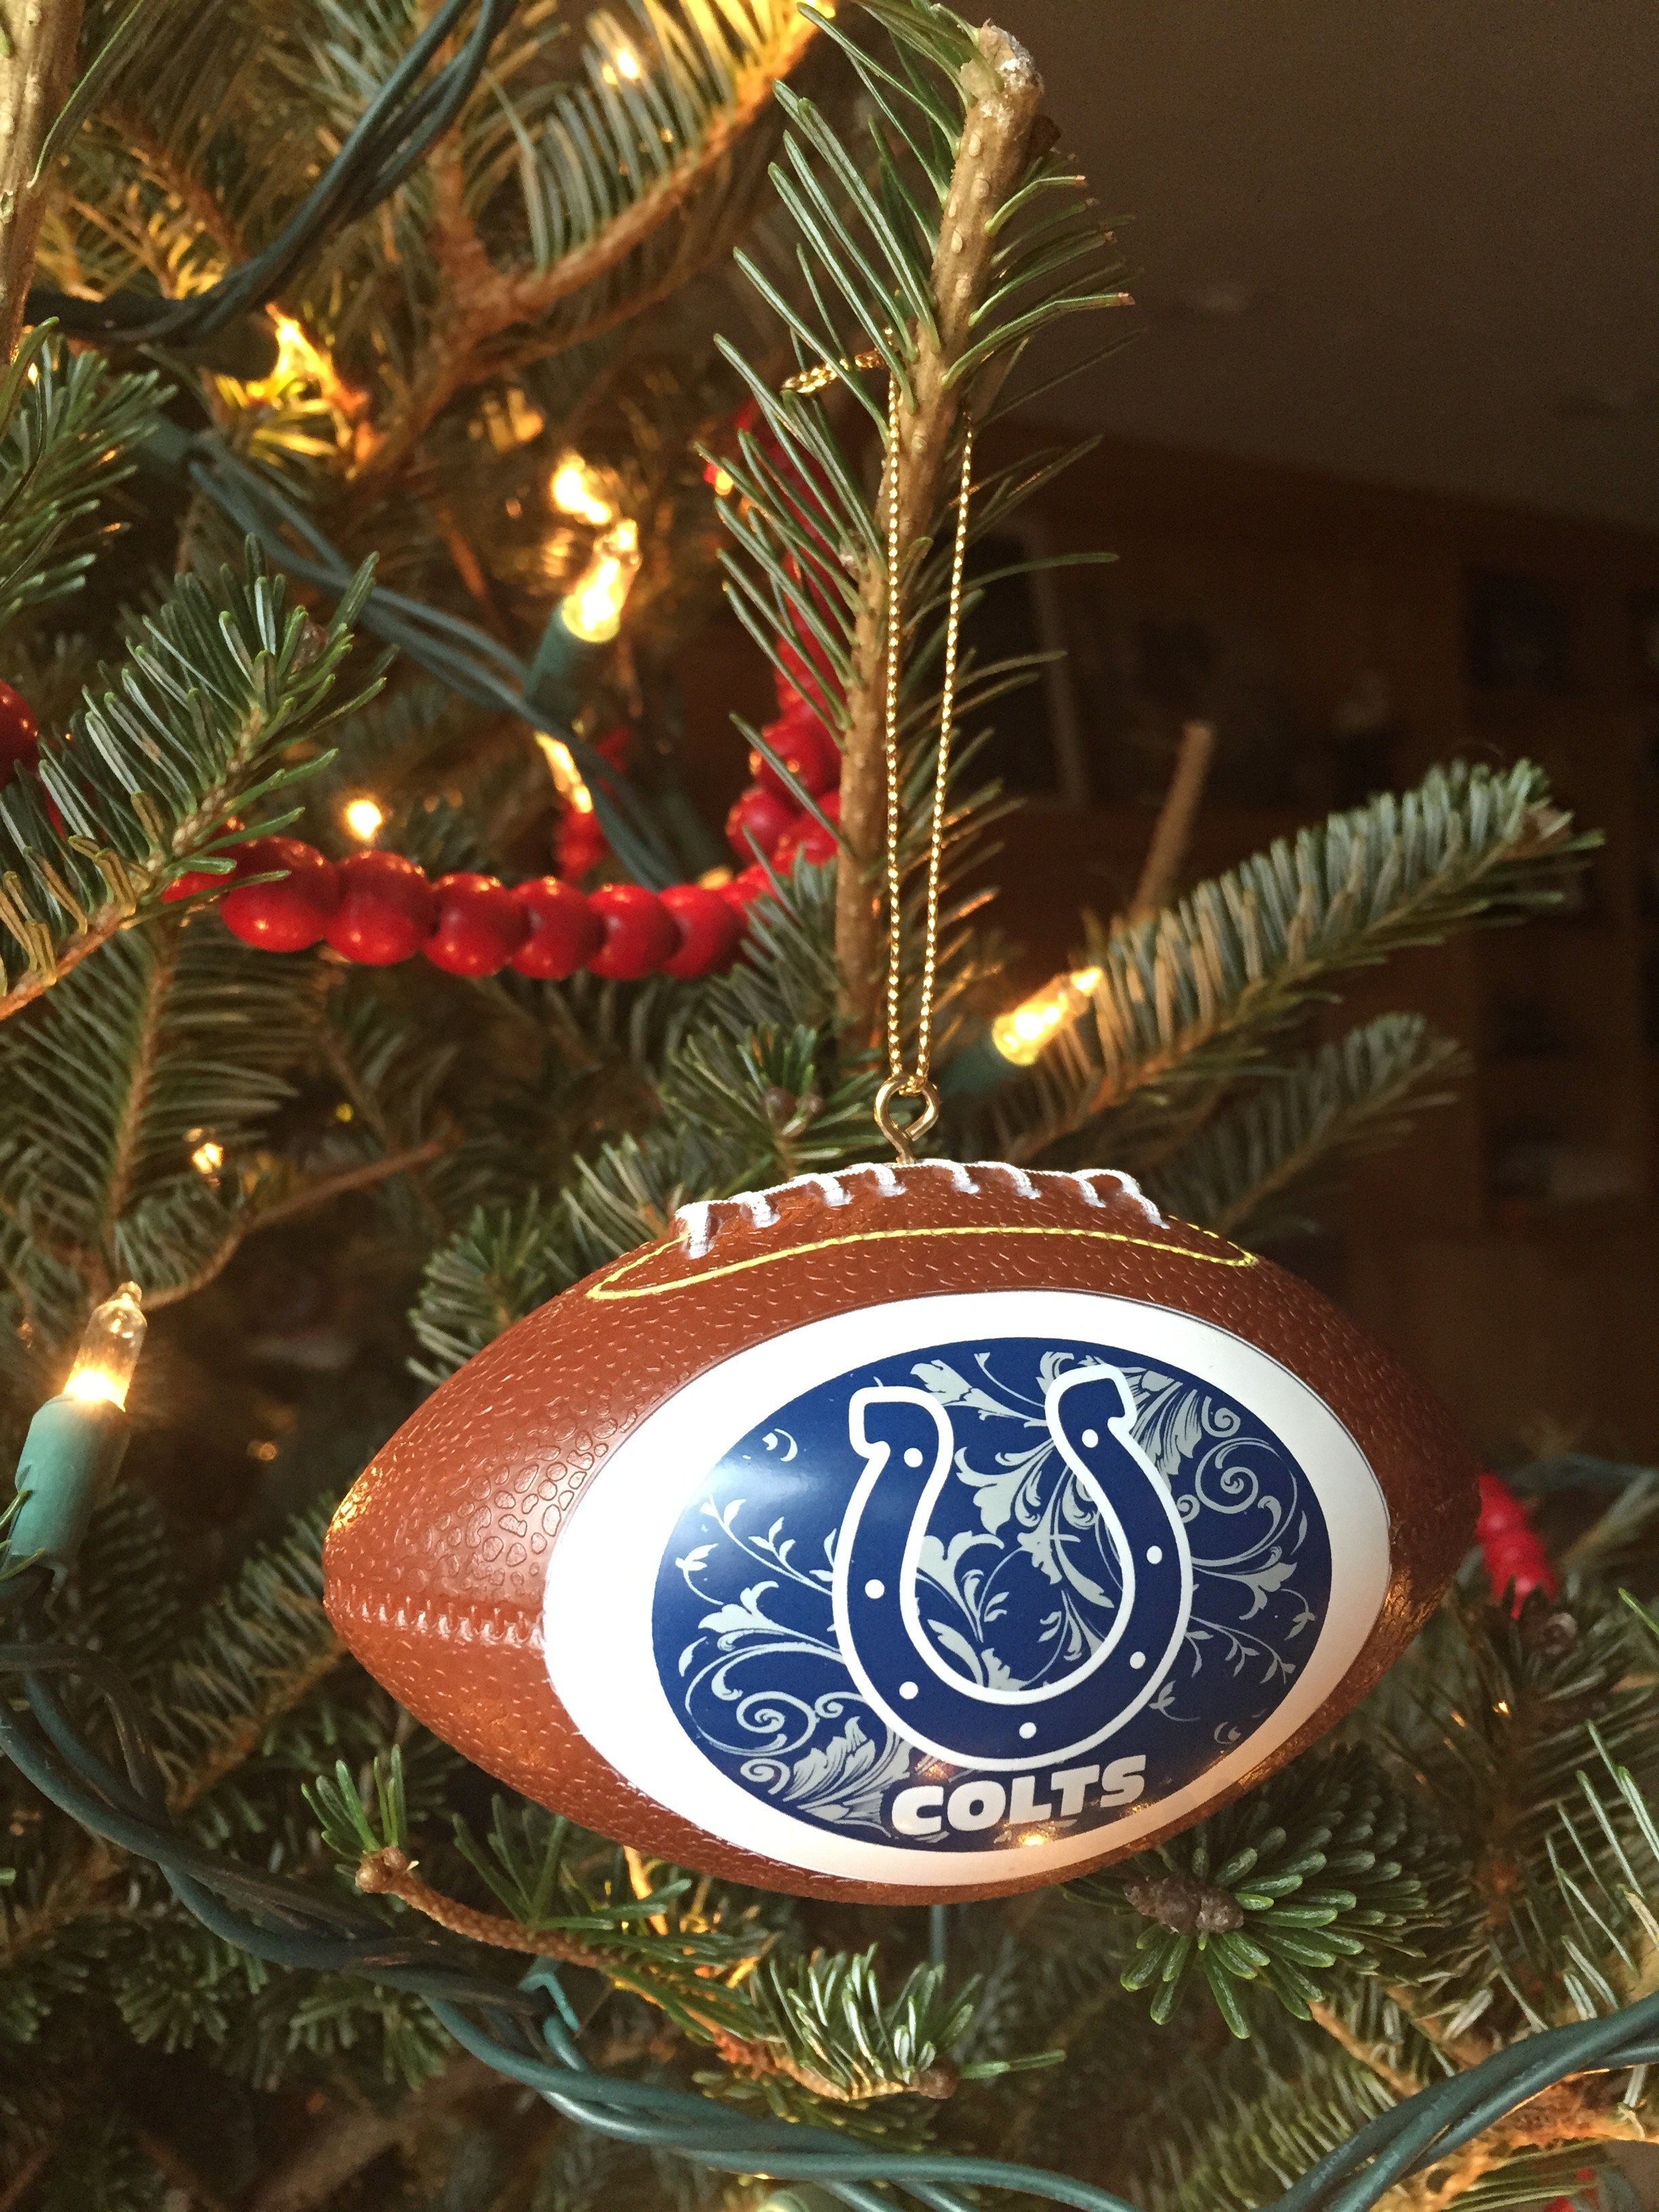 Indianapolis Colts Christmas ornament